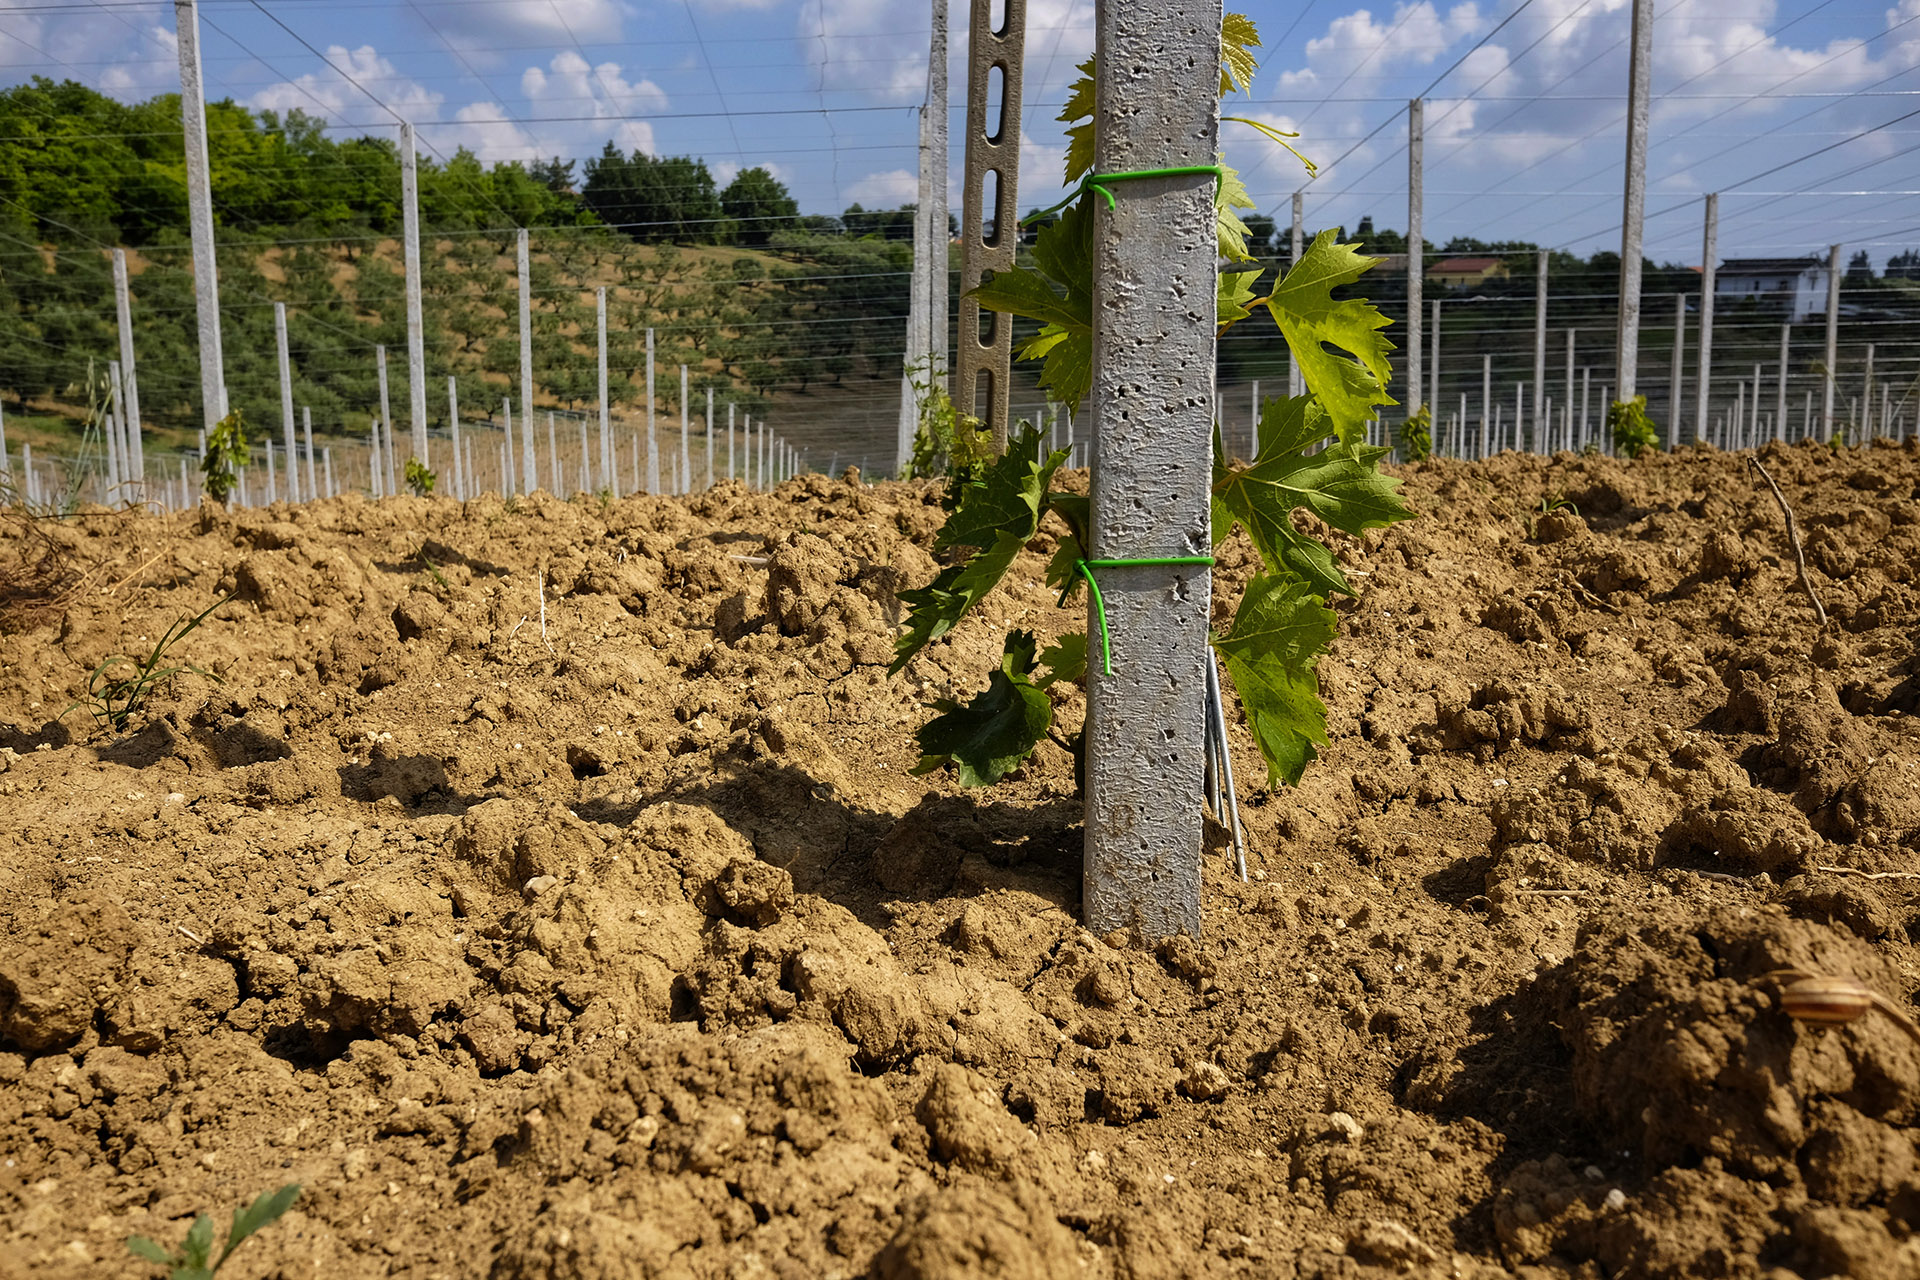 vineyard just planted in Abruzzo